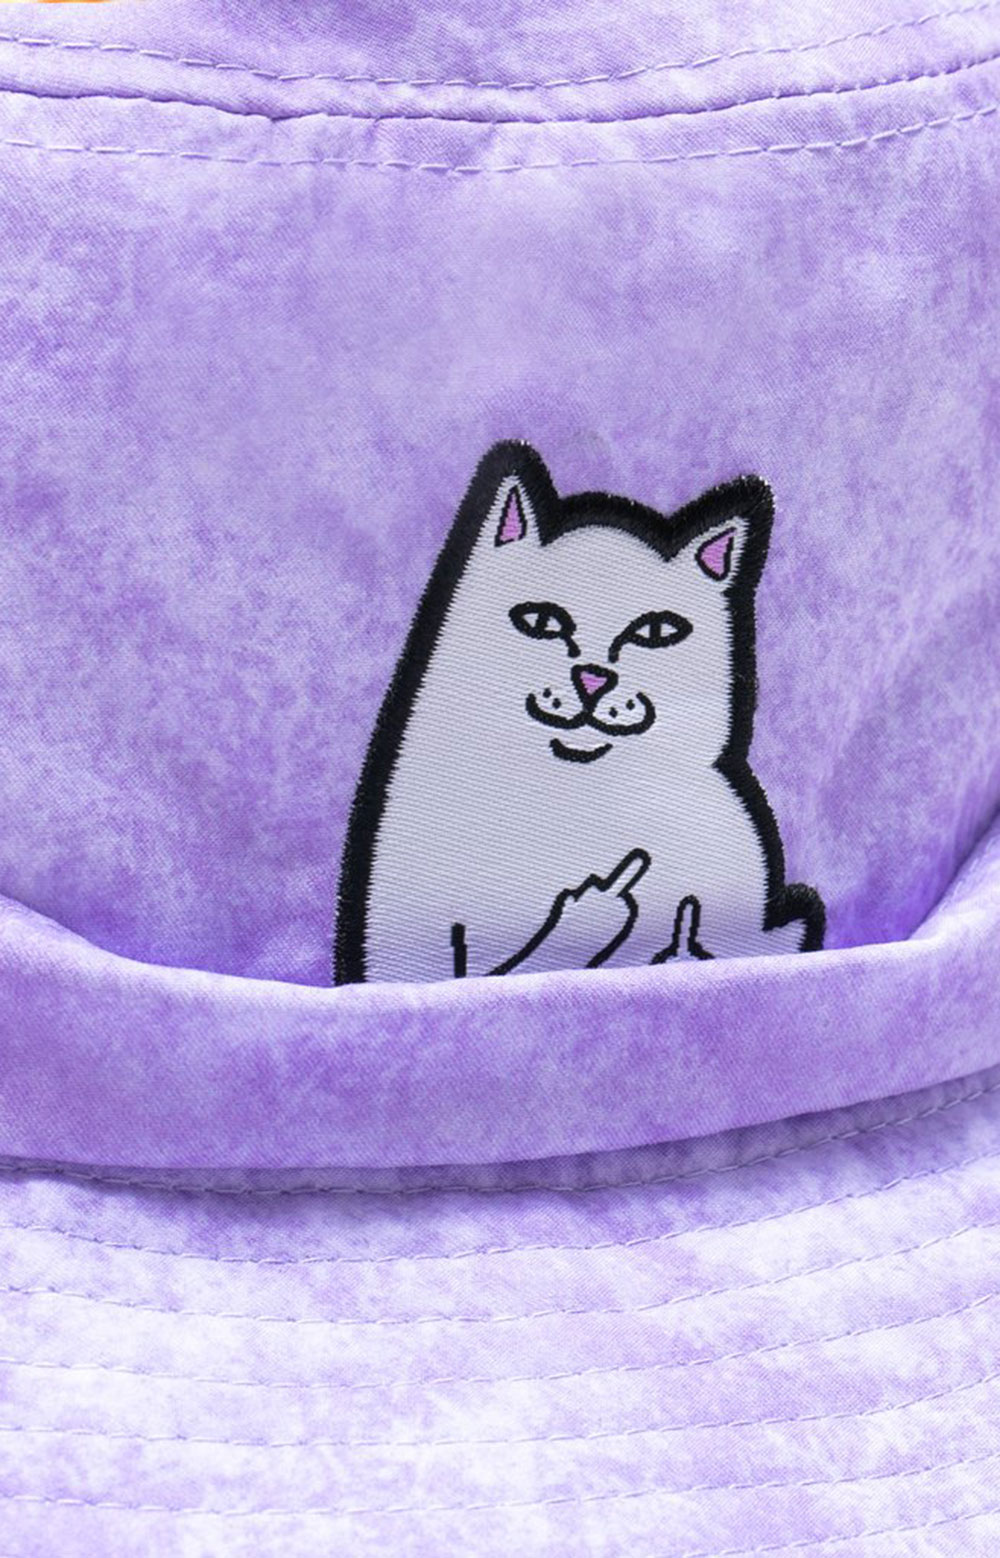 Lord Nermal Bucket Hat - Lavender Mineral Wash  2